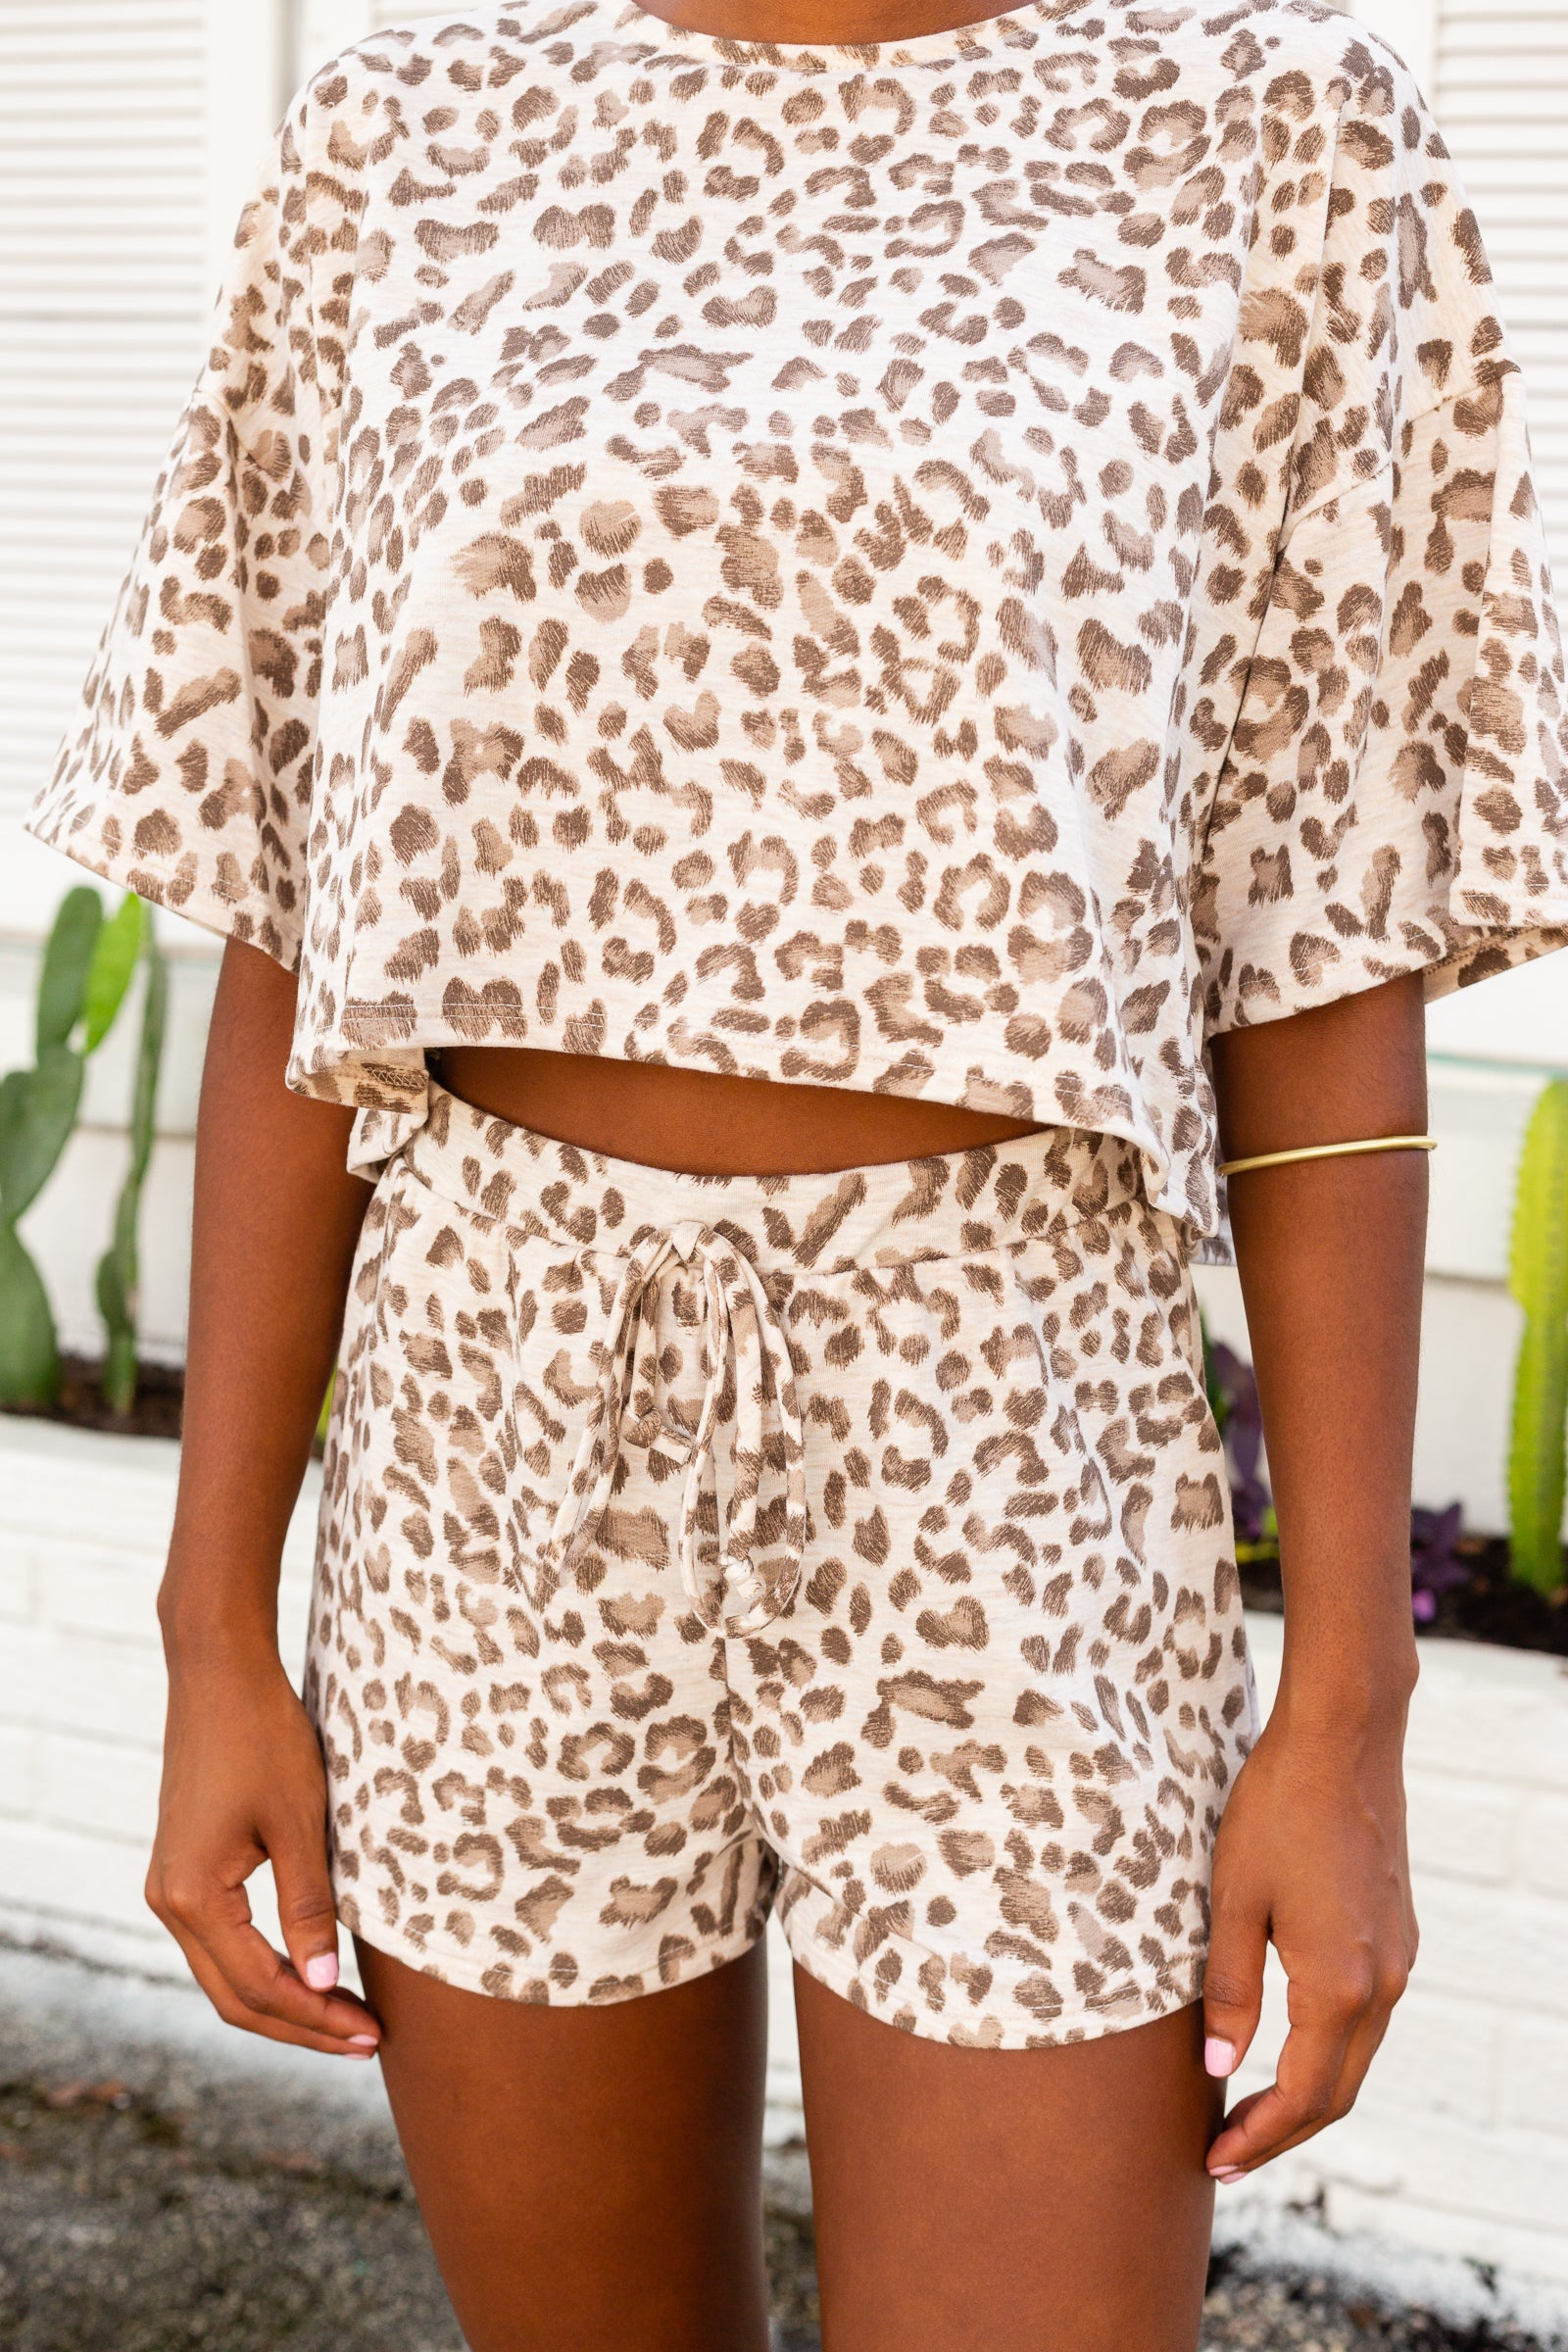 Light leopard spots speckle the fabric of these easy-to-wear shorts. Elastic waistband with a faux drawstring tie leading down to relaxed and comfortable shorts.